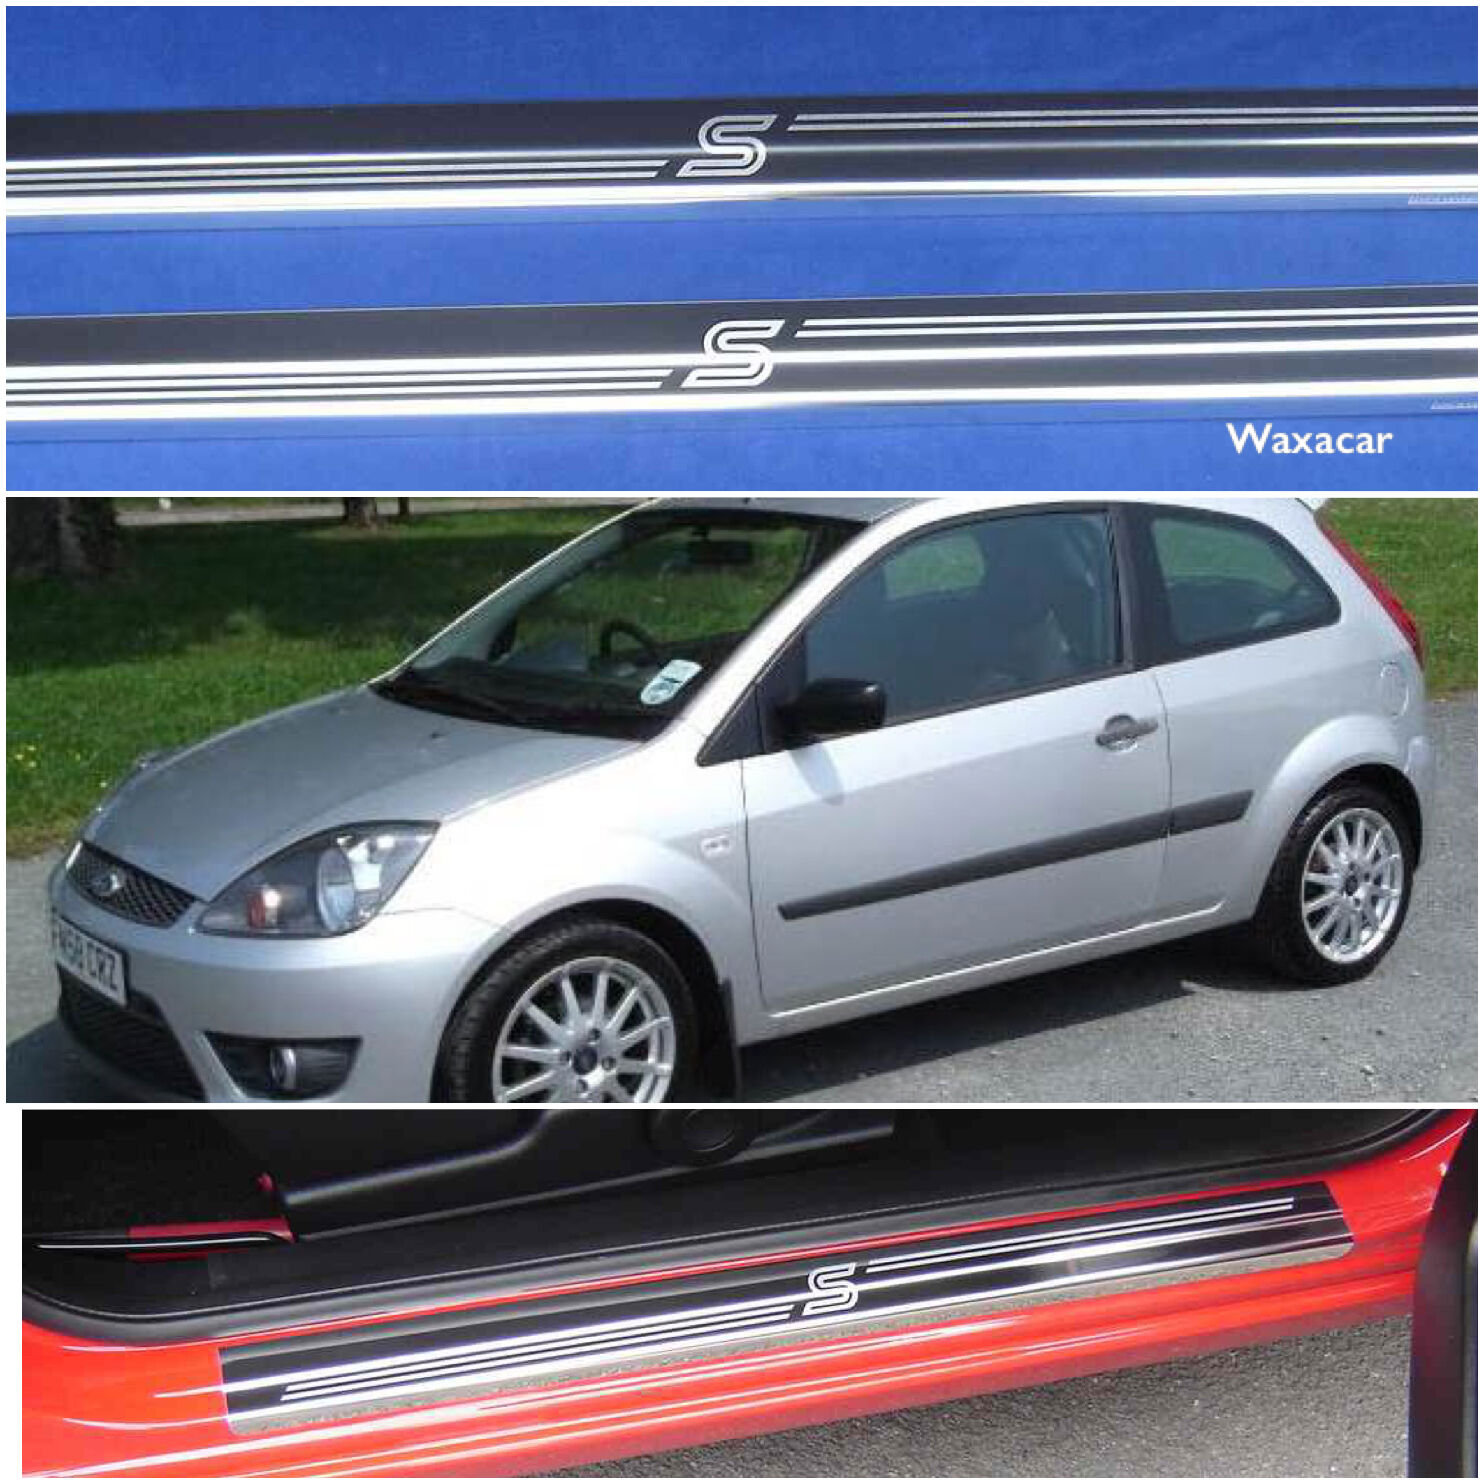 ford fiesta zetec s 02 08 stainless steel kick plate door sill protectors k49. Black Bedroom Furniture Sets. Home Design Ideas